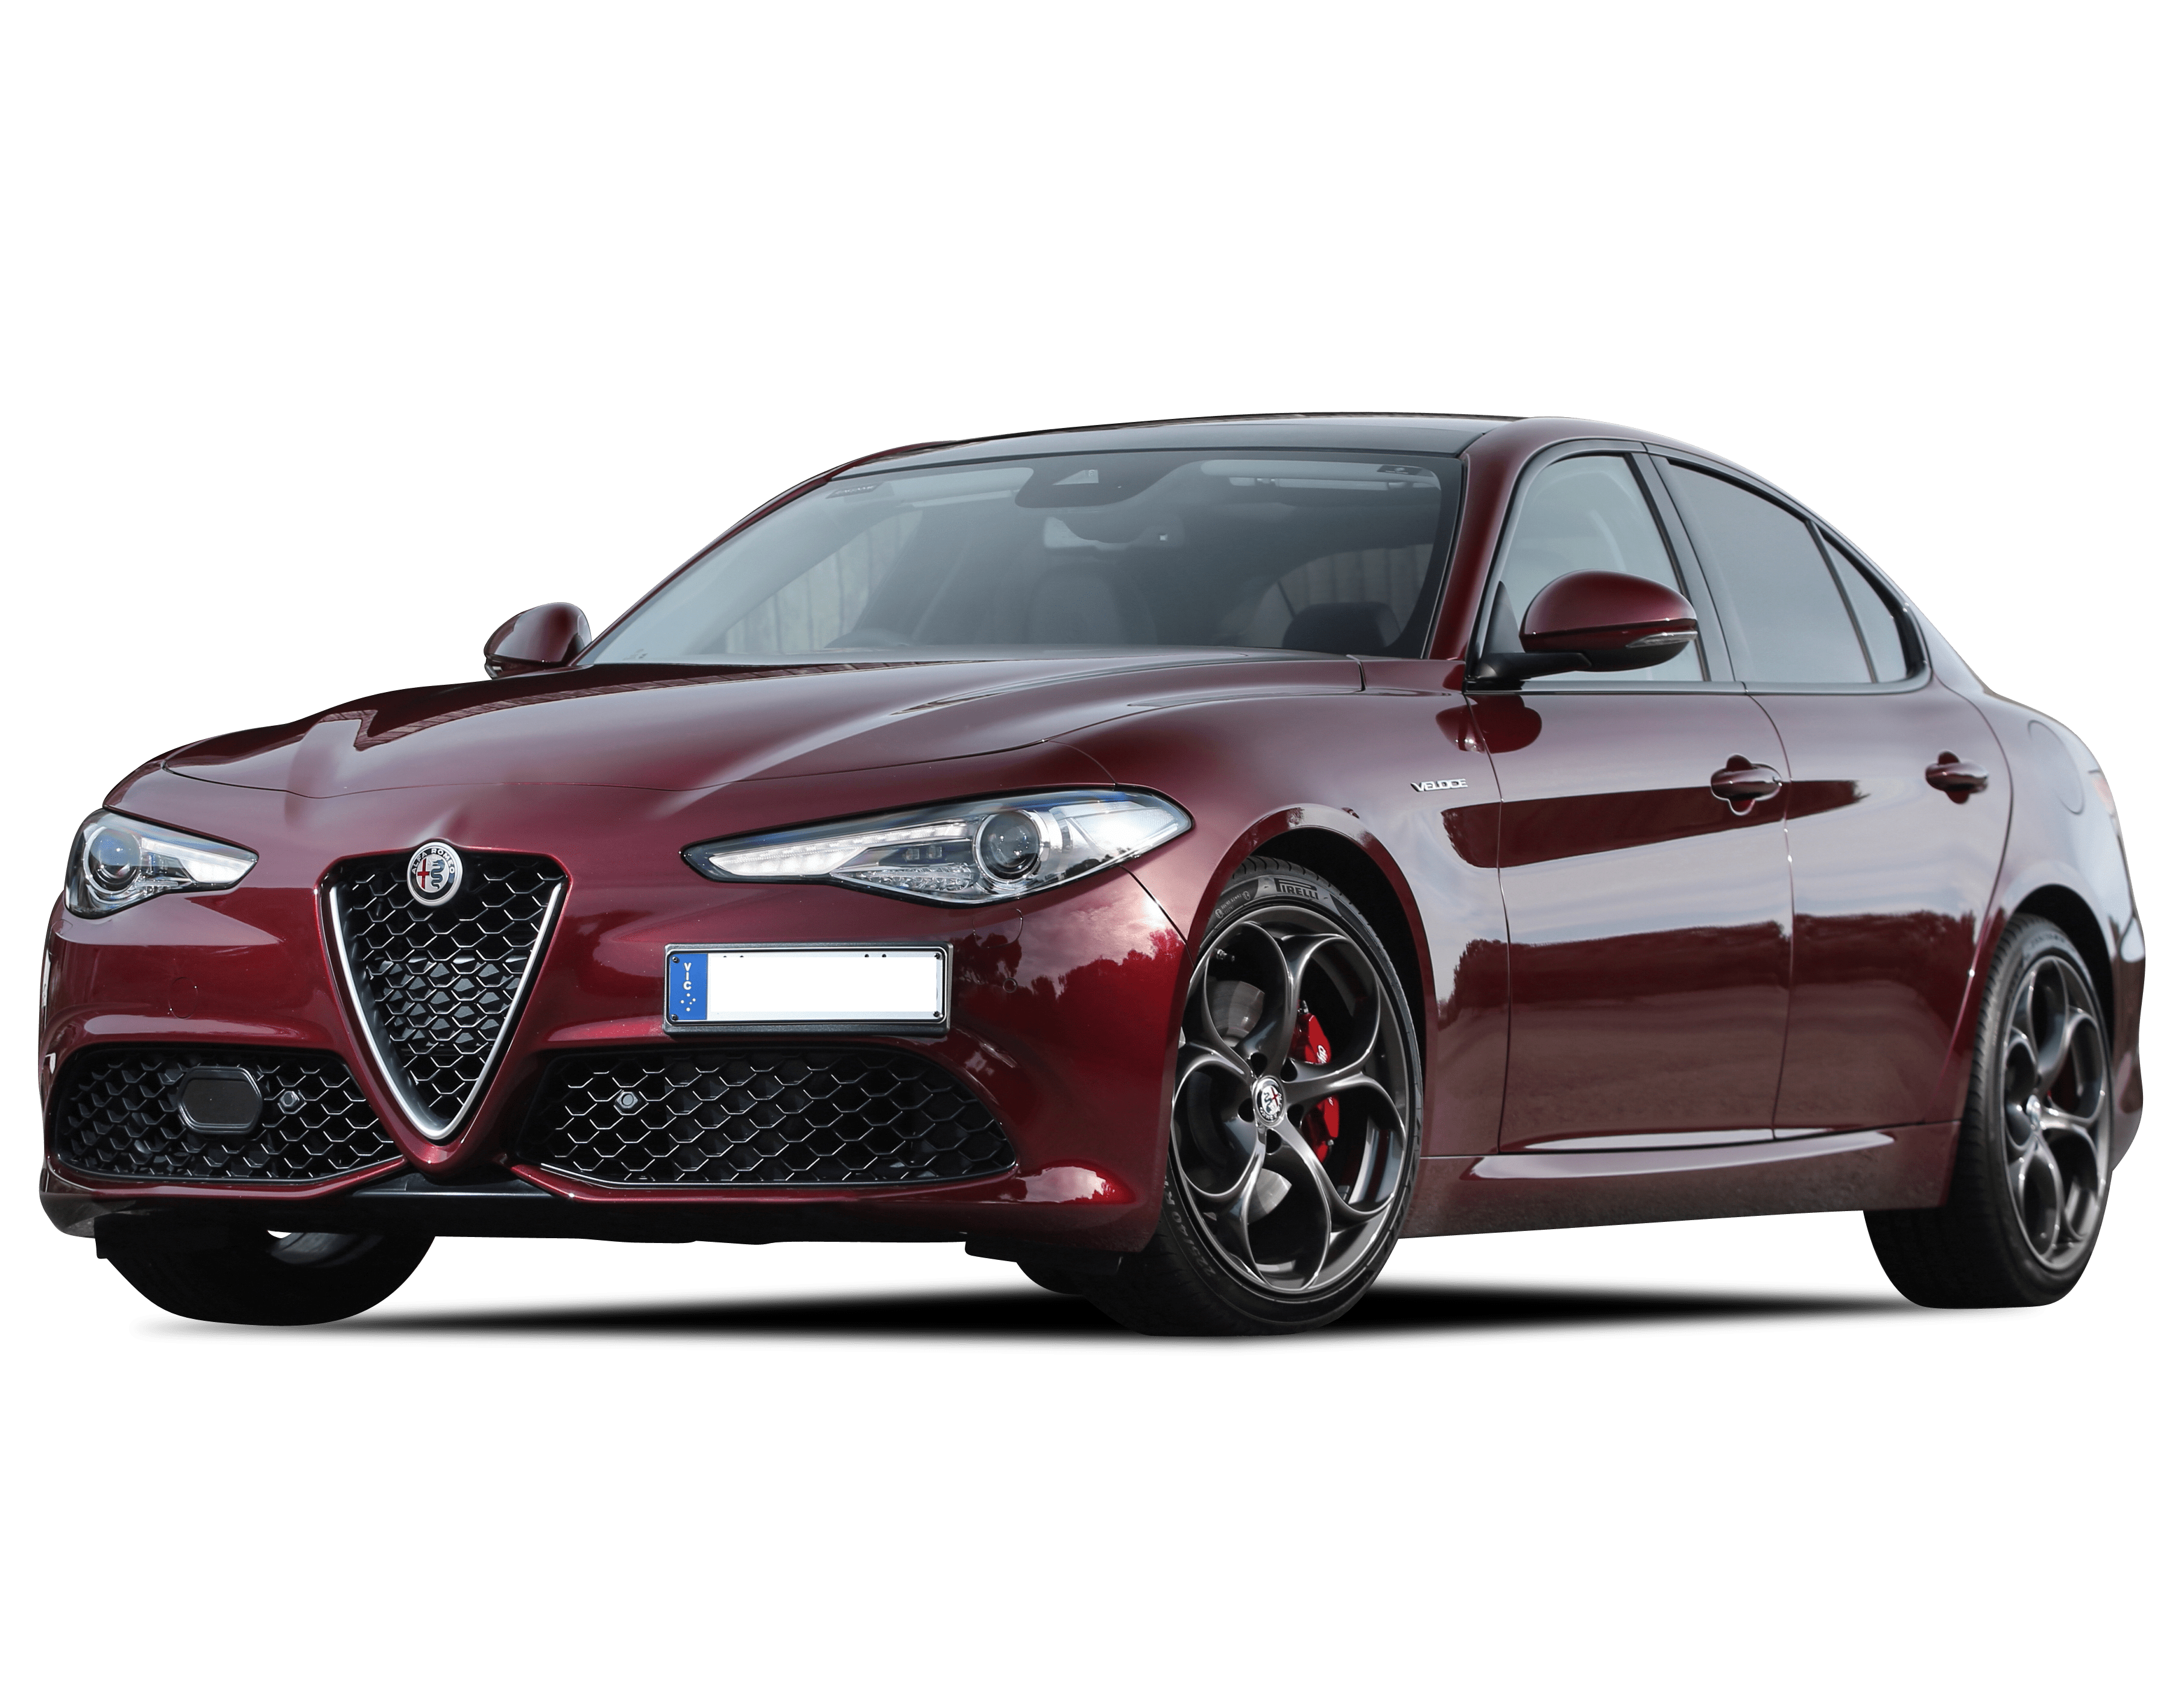 Alfa Romeo Giulia Msrp >> Alfa Romeo Giulia Review Price For Sale Specs Interior